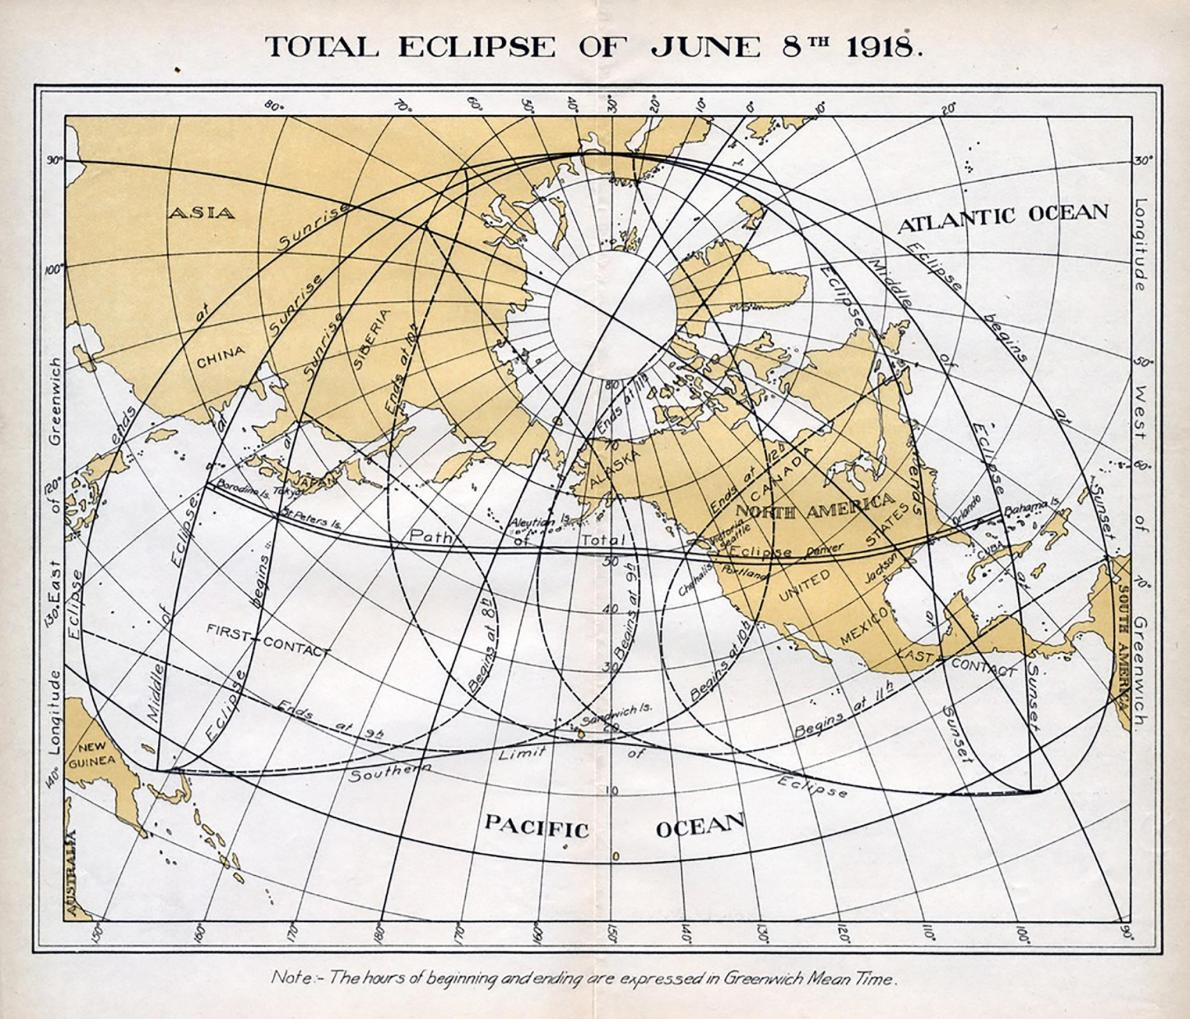 In 1918 a total solar eclipse took a similar path across North America.